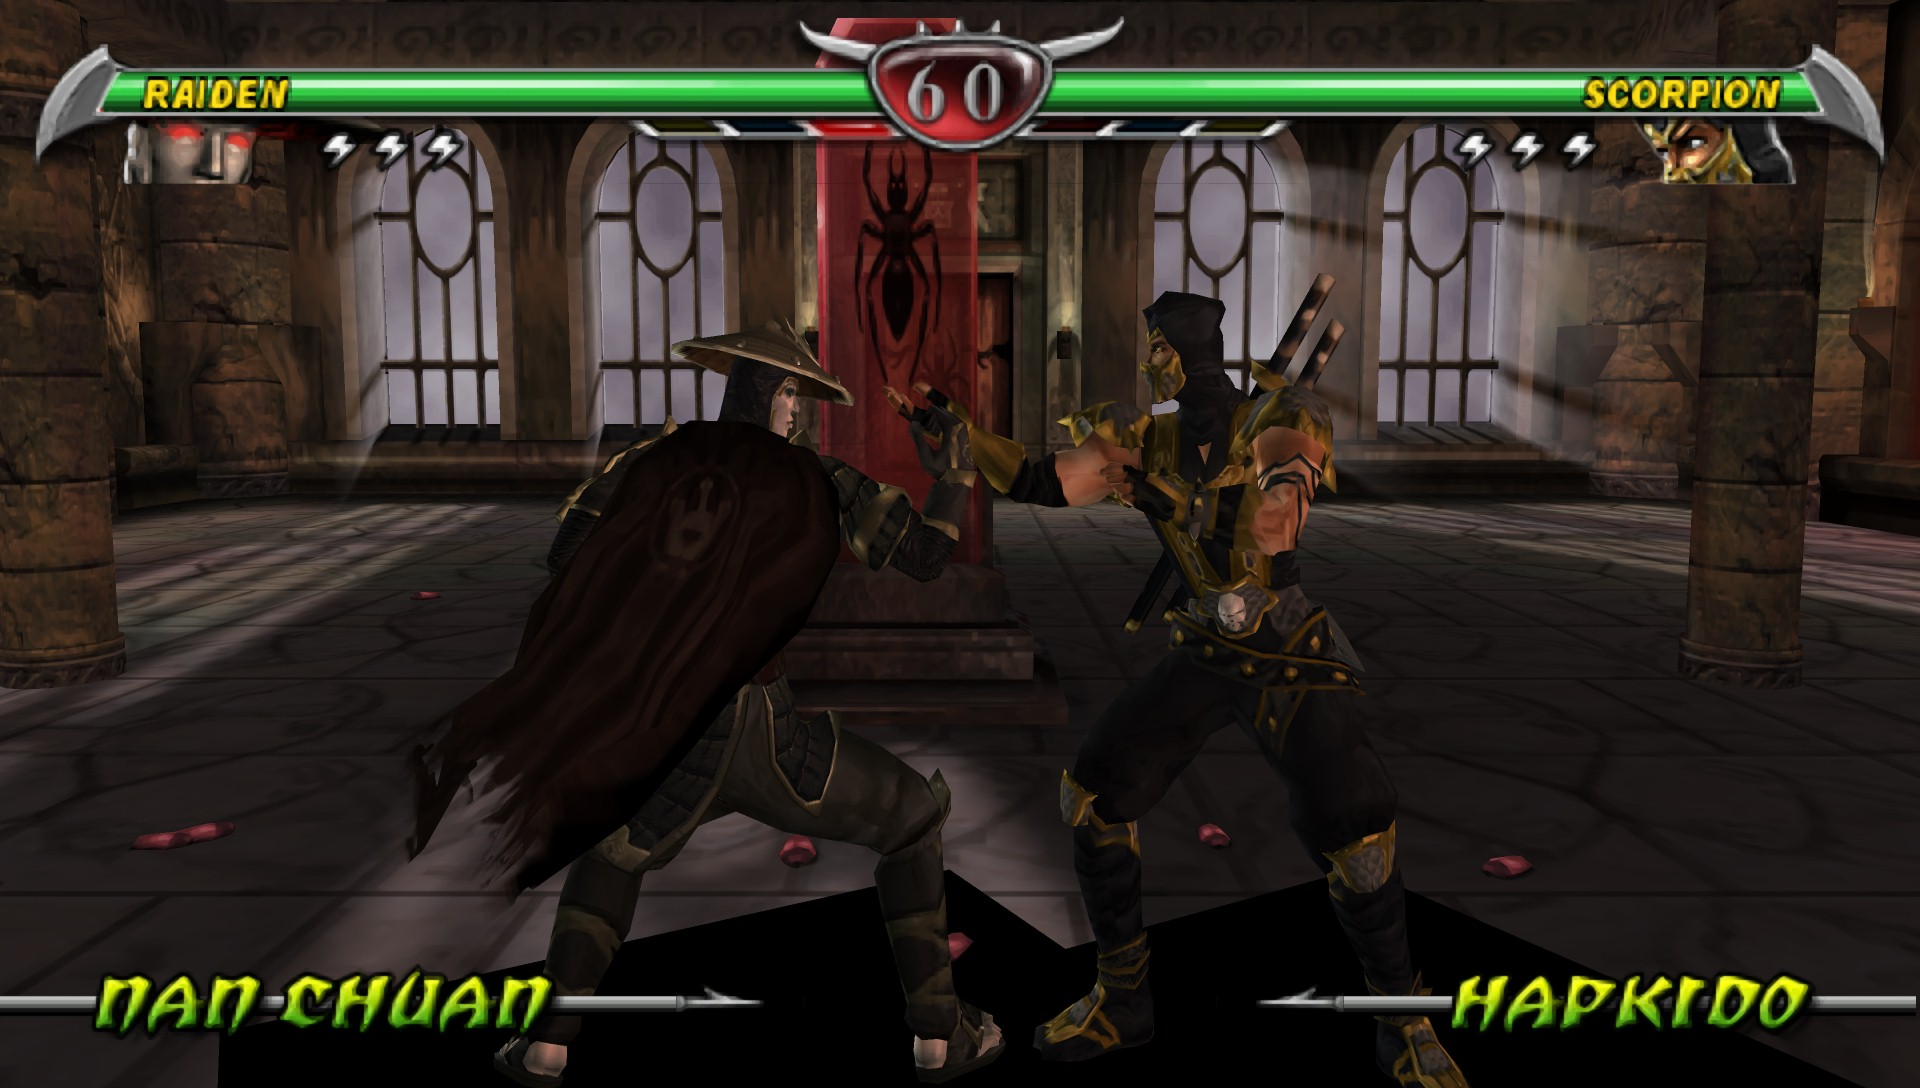 Screenshots And Videos Ppsspp Psp Emulator For Android